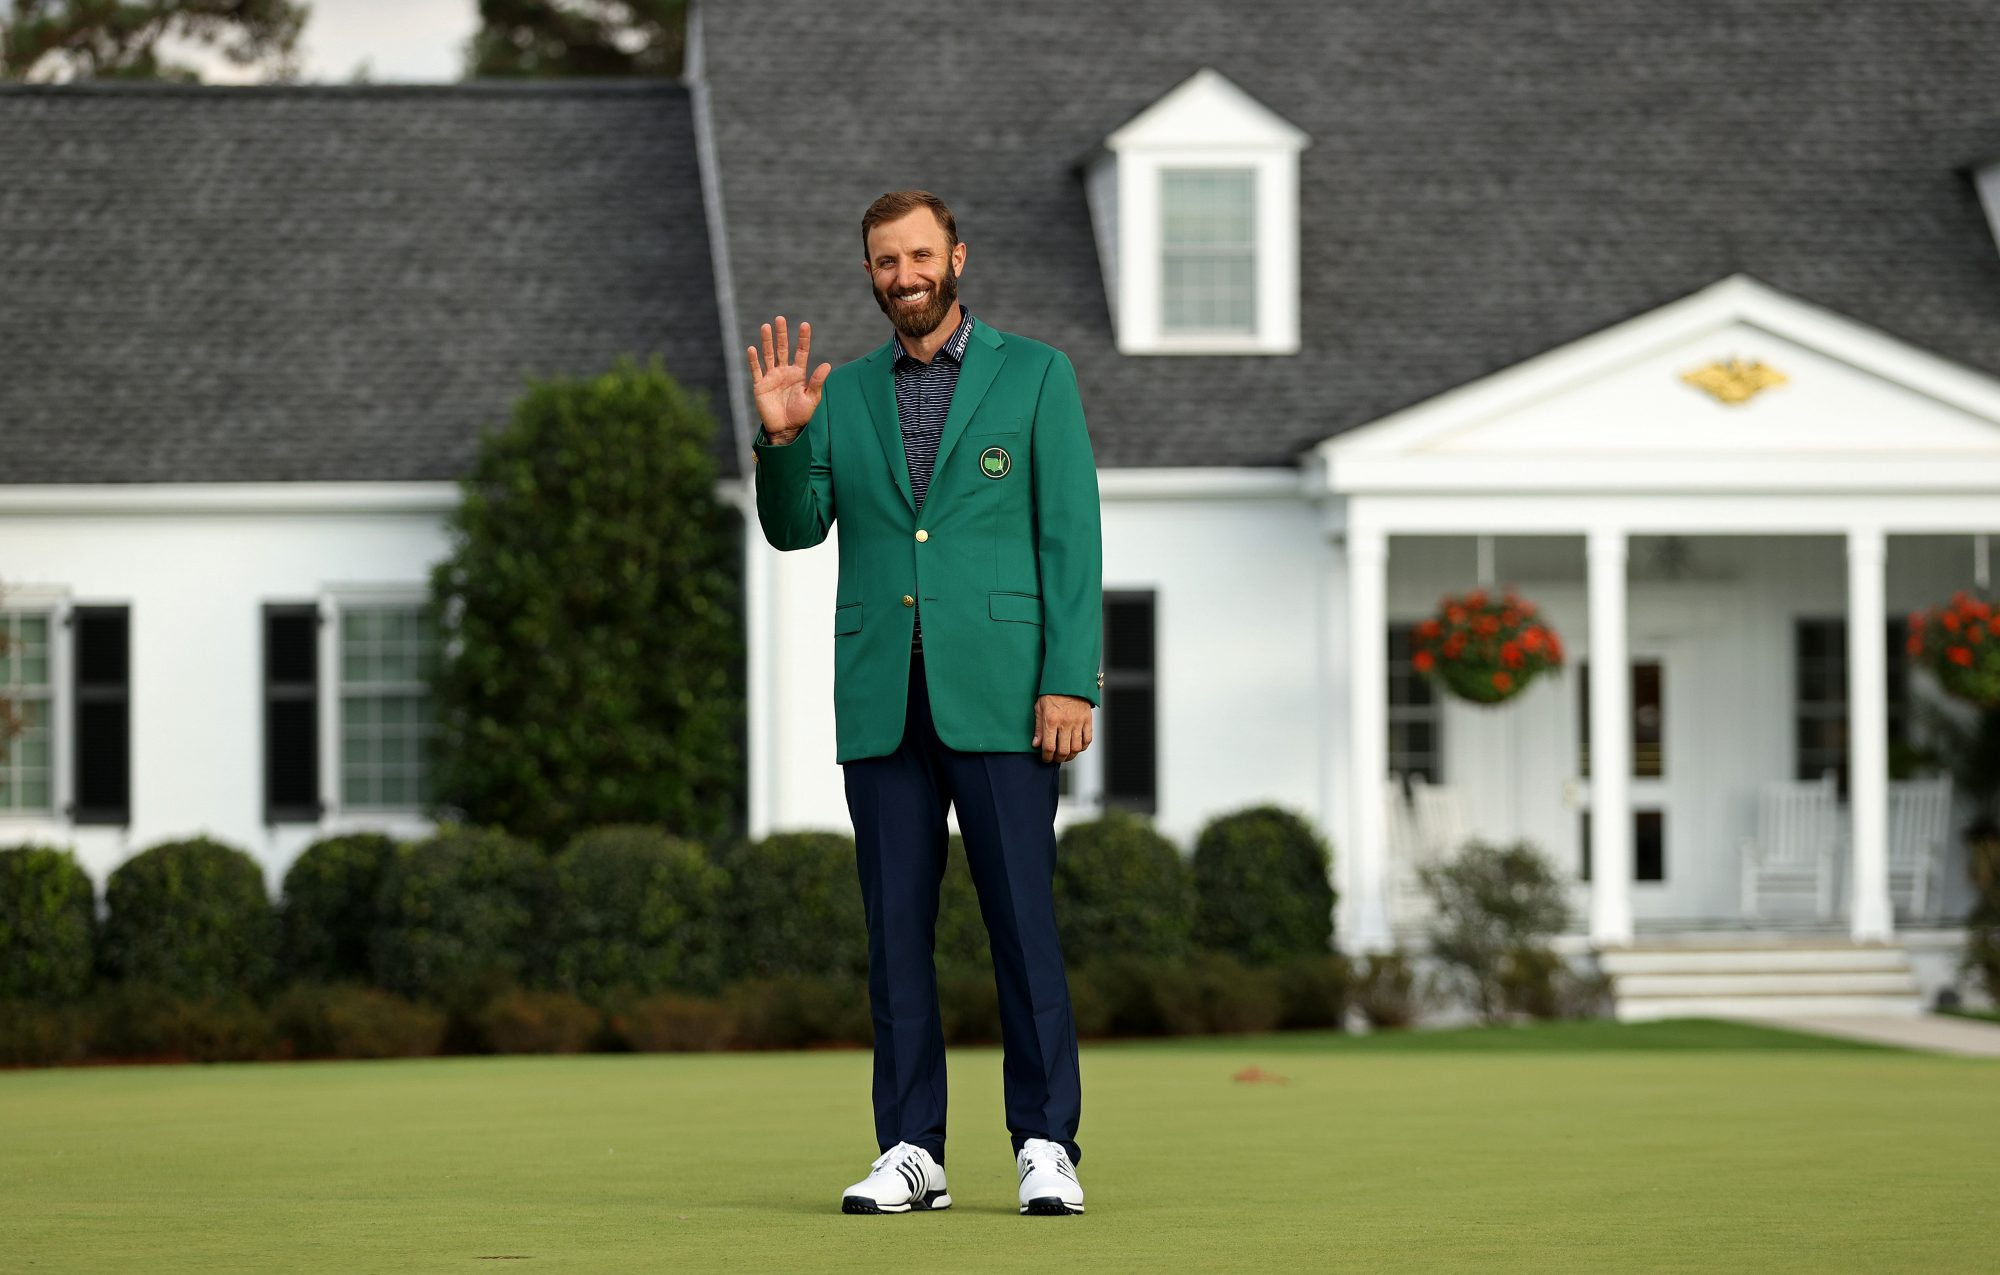 Dustin Johnson wears the green jacket and nobody gives a crap.